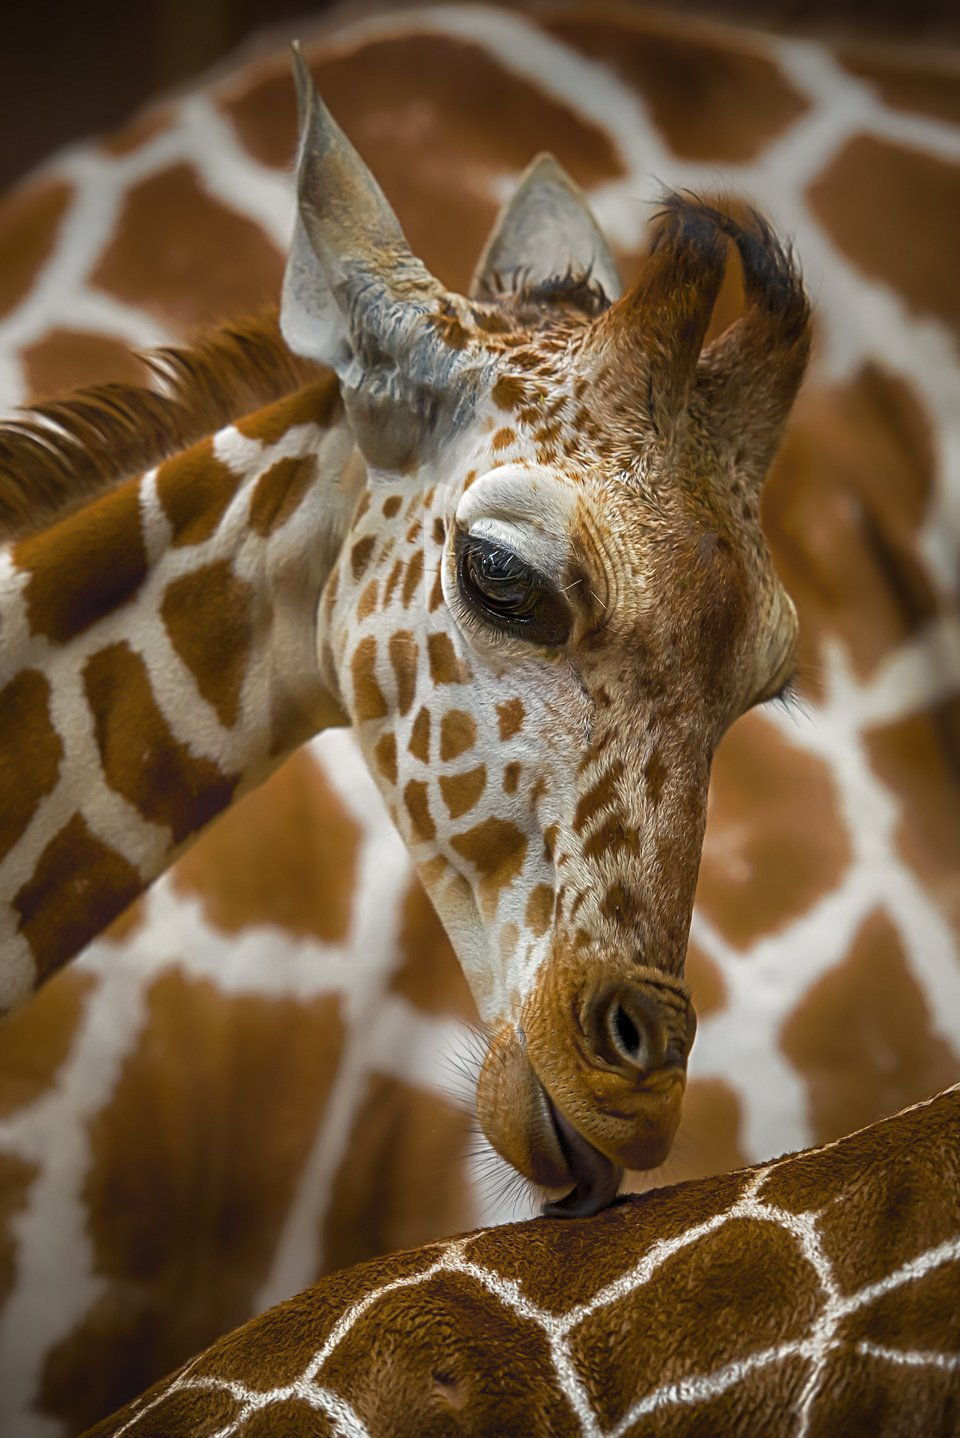 Giraffe at Cologne's zoom, Germany (A.Rosenthal/AGORA images)